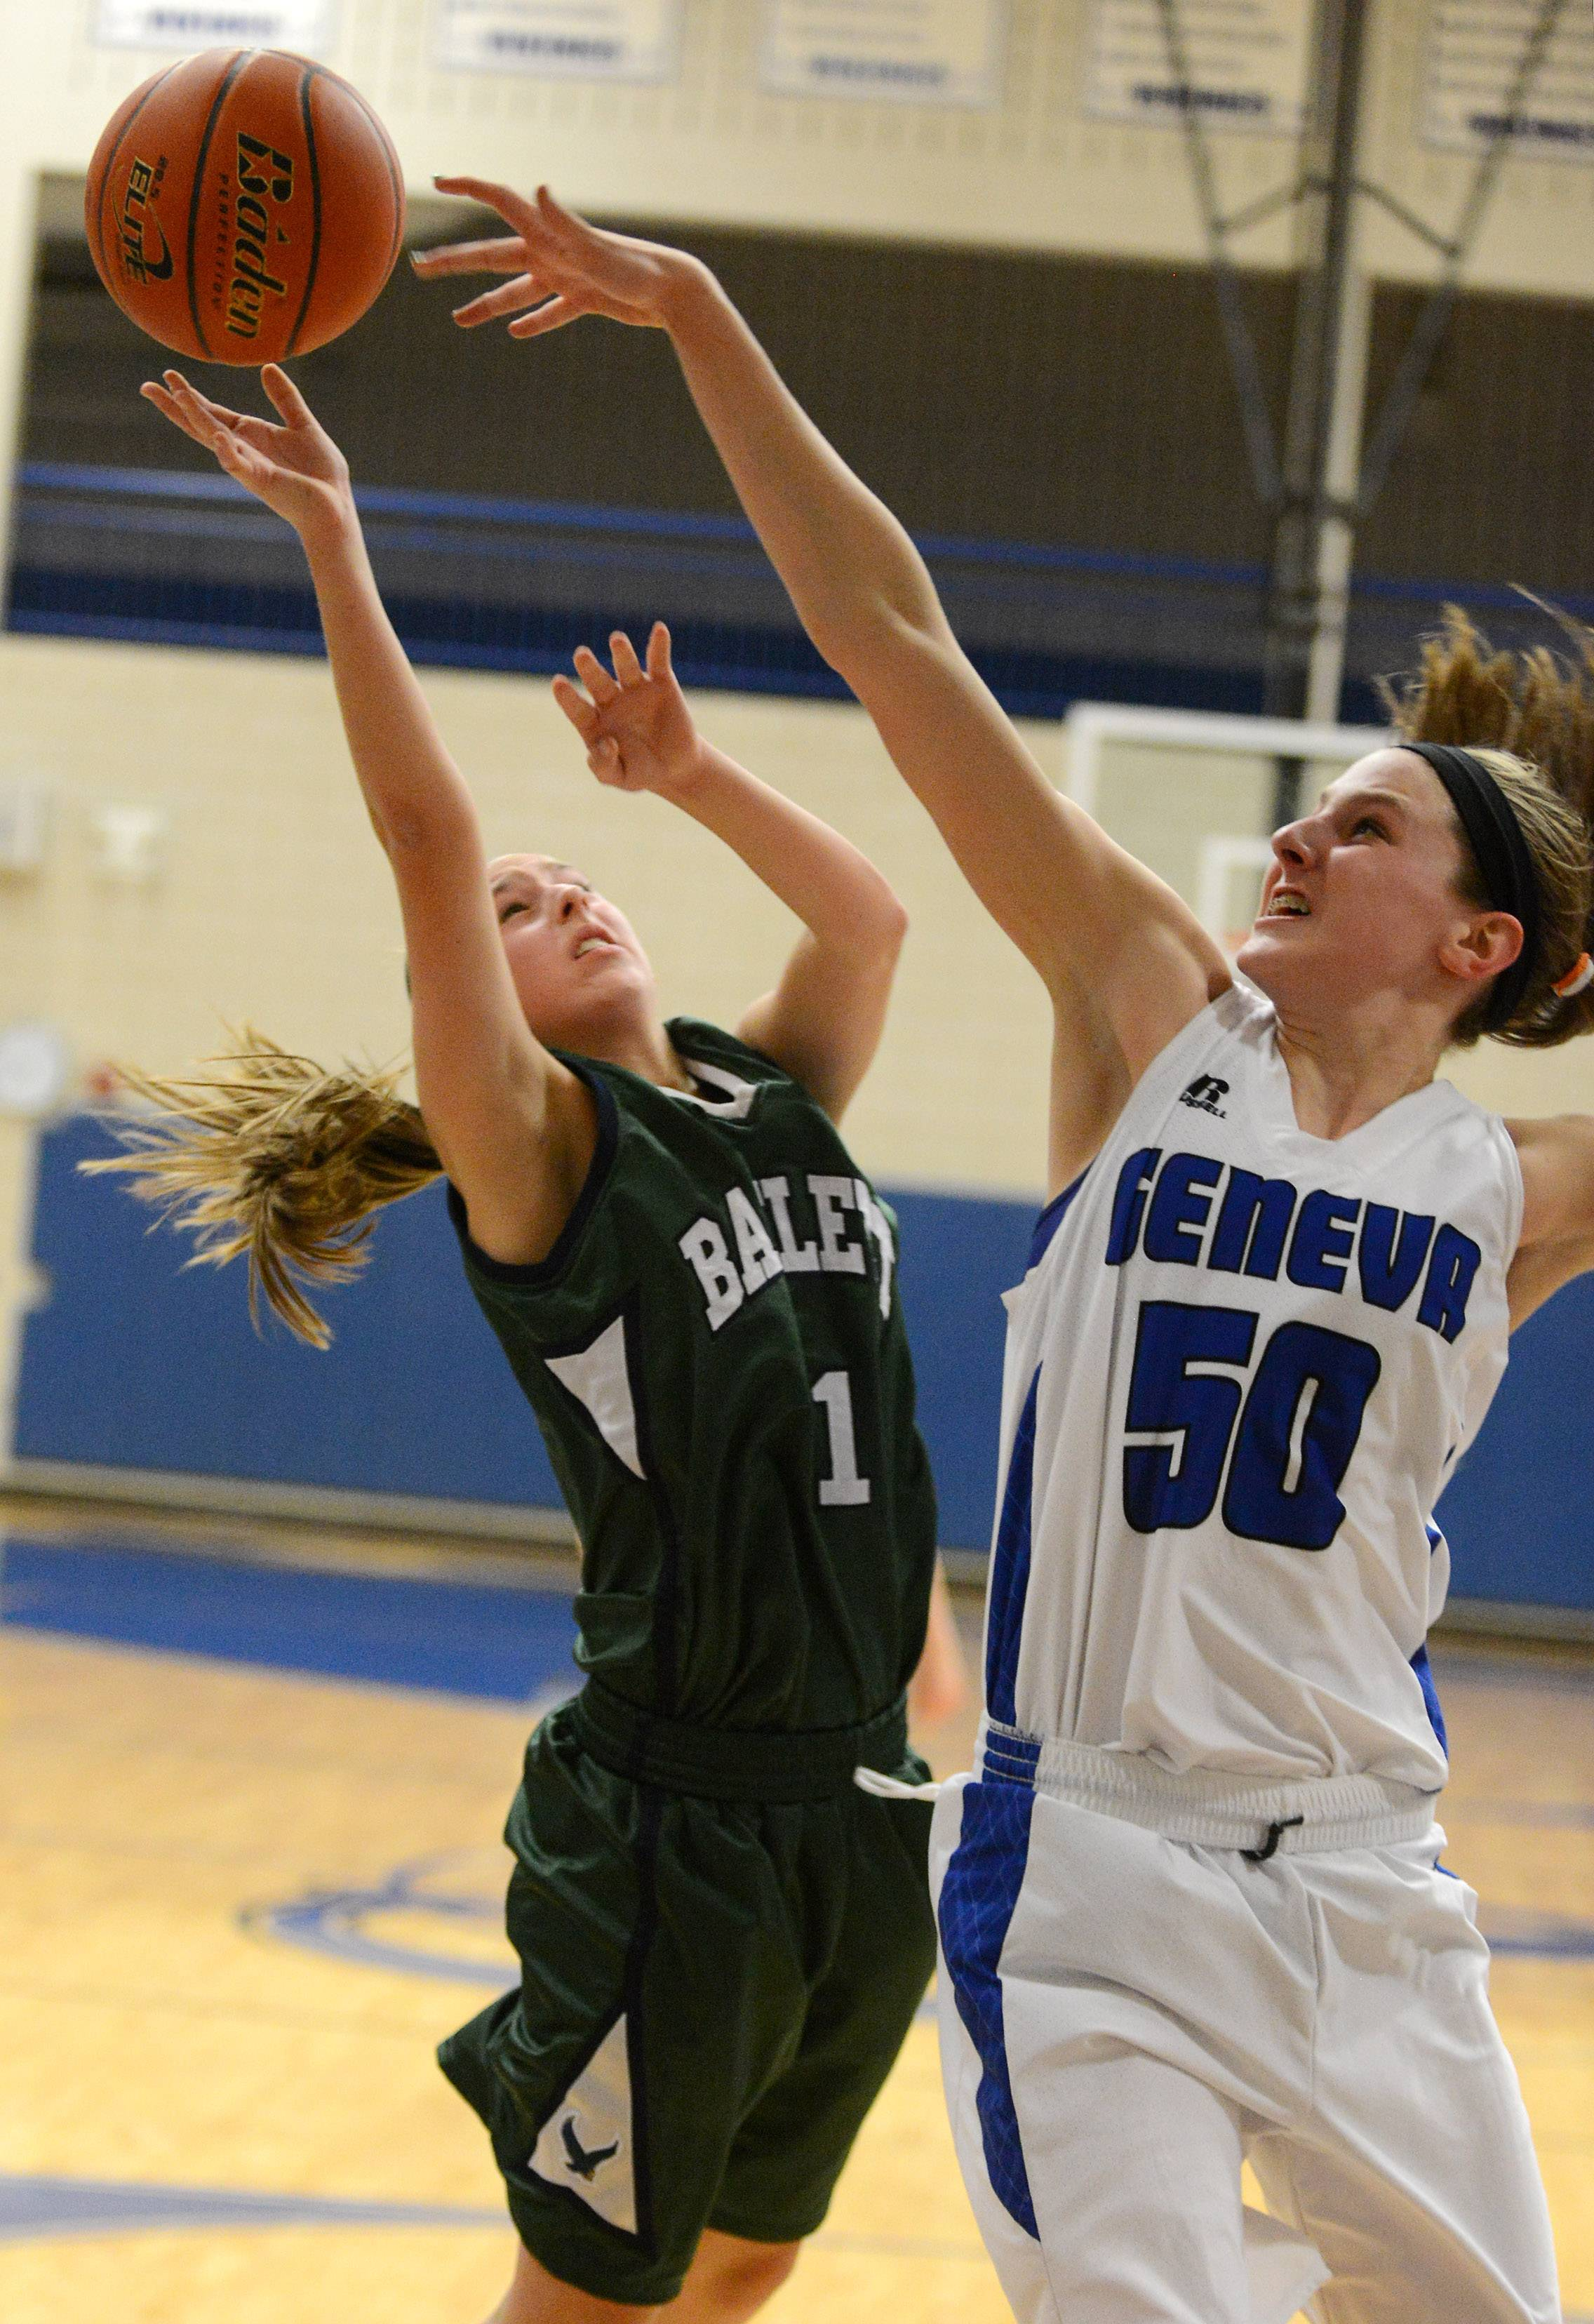 Geneva's Grace Loberg blocks a shot by Bartlett's Shelley Lyjack (11) during Thursday's game in Geneva.